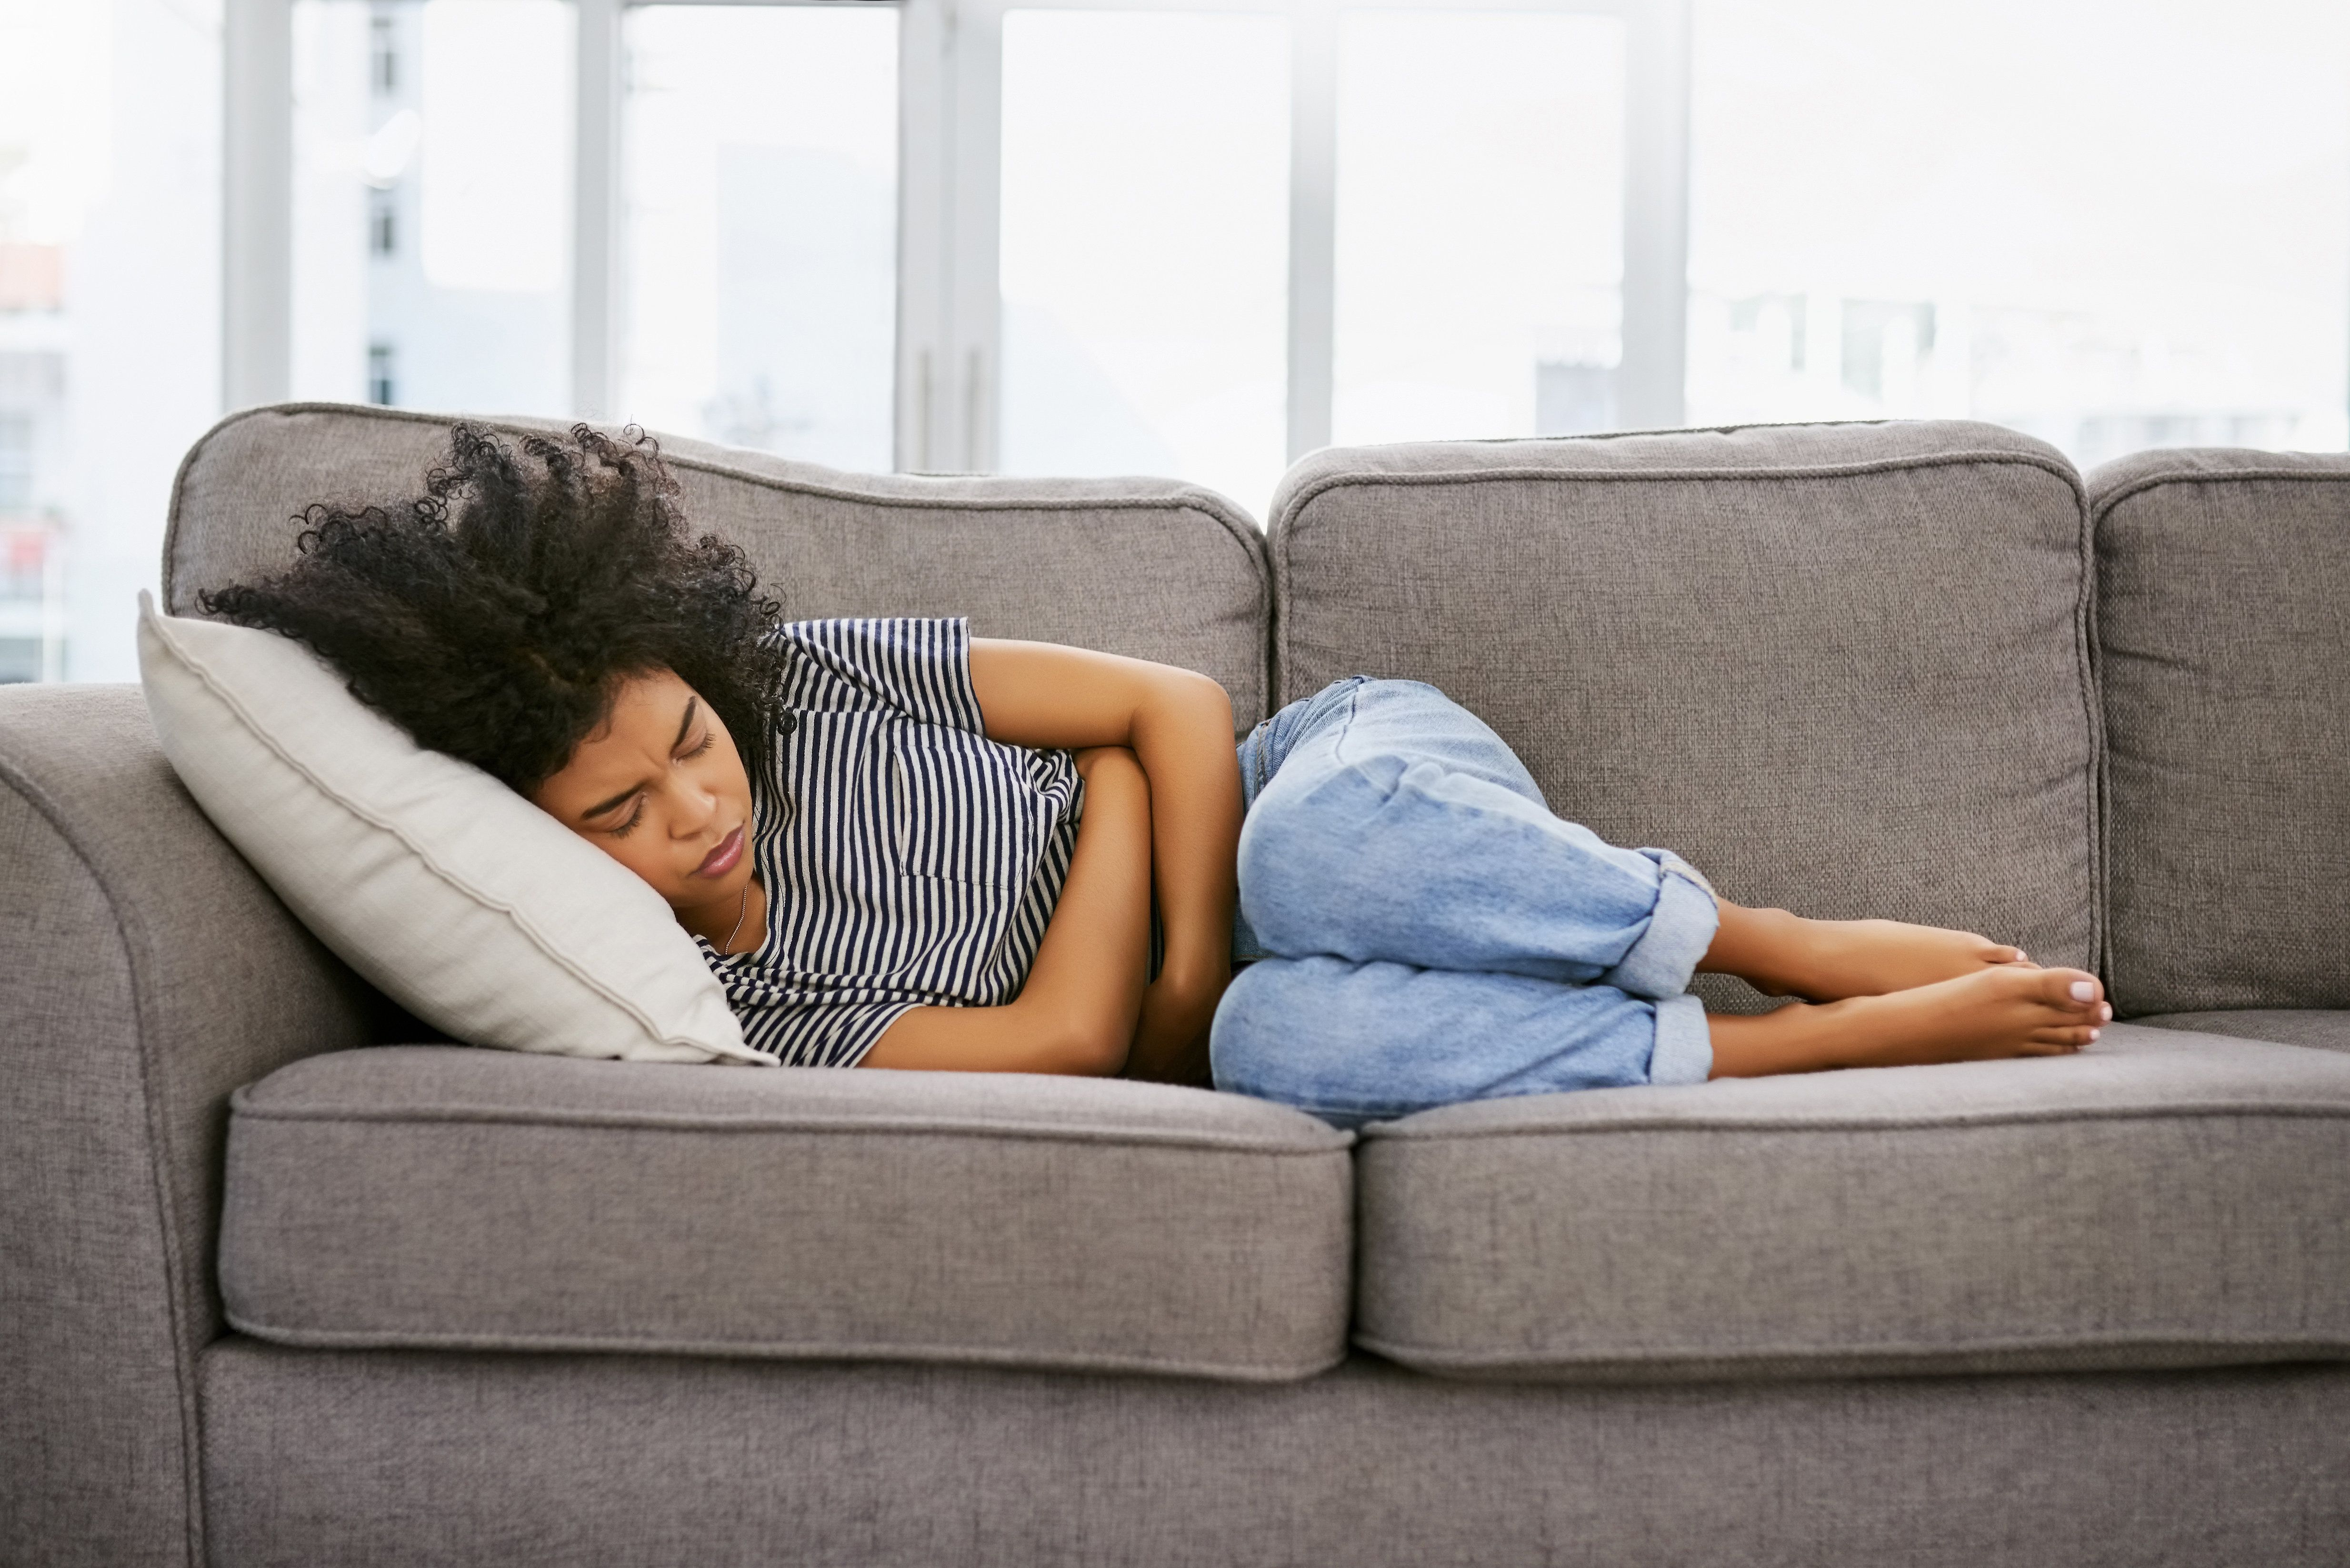 6 Stomach Pains You Should Never Ignore